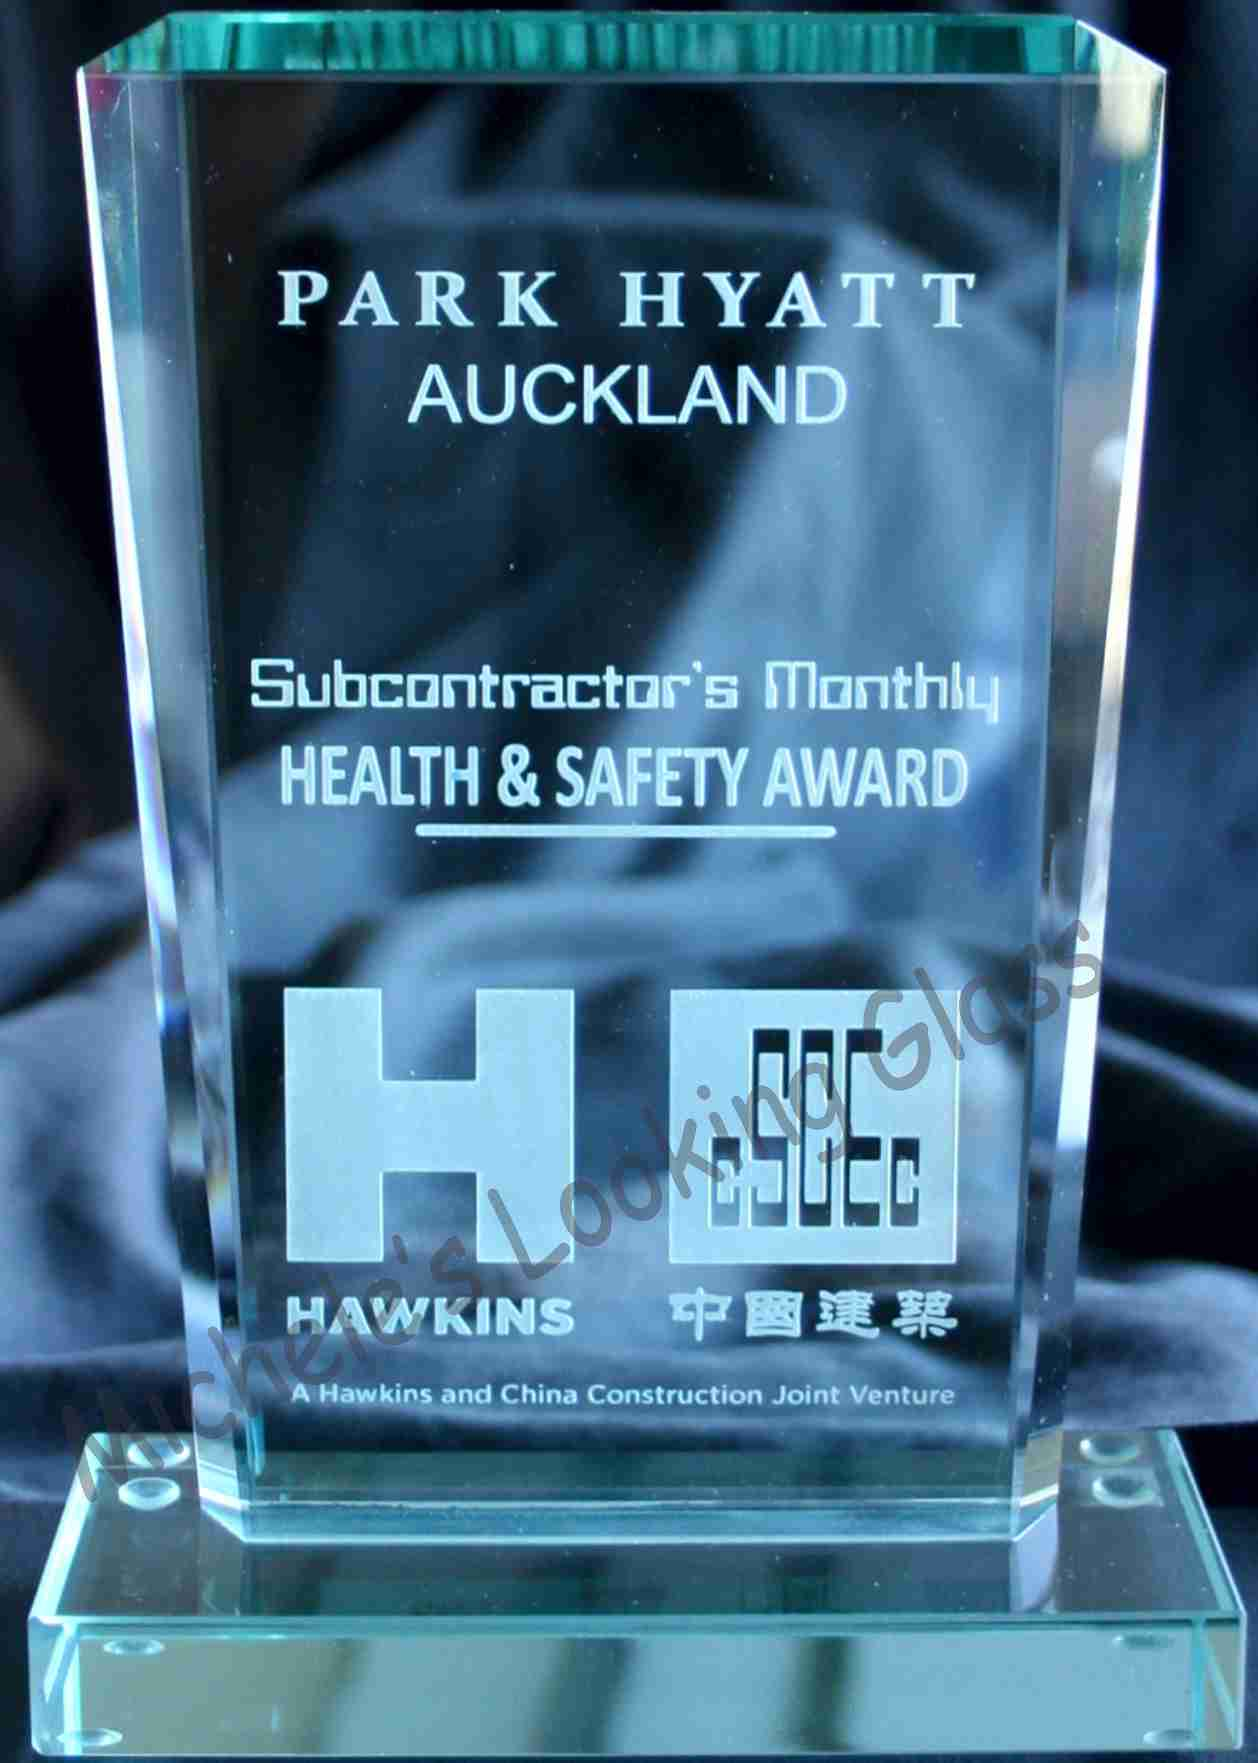 Safety Award Glass Etching Improves Your Business S Image And Serves As A Marketing Tool